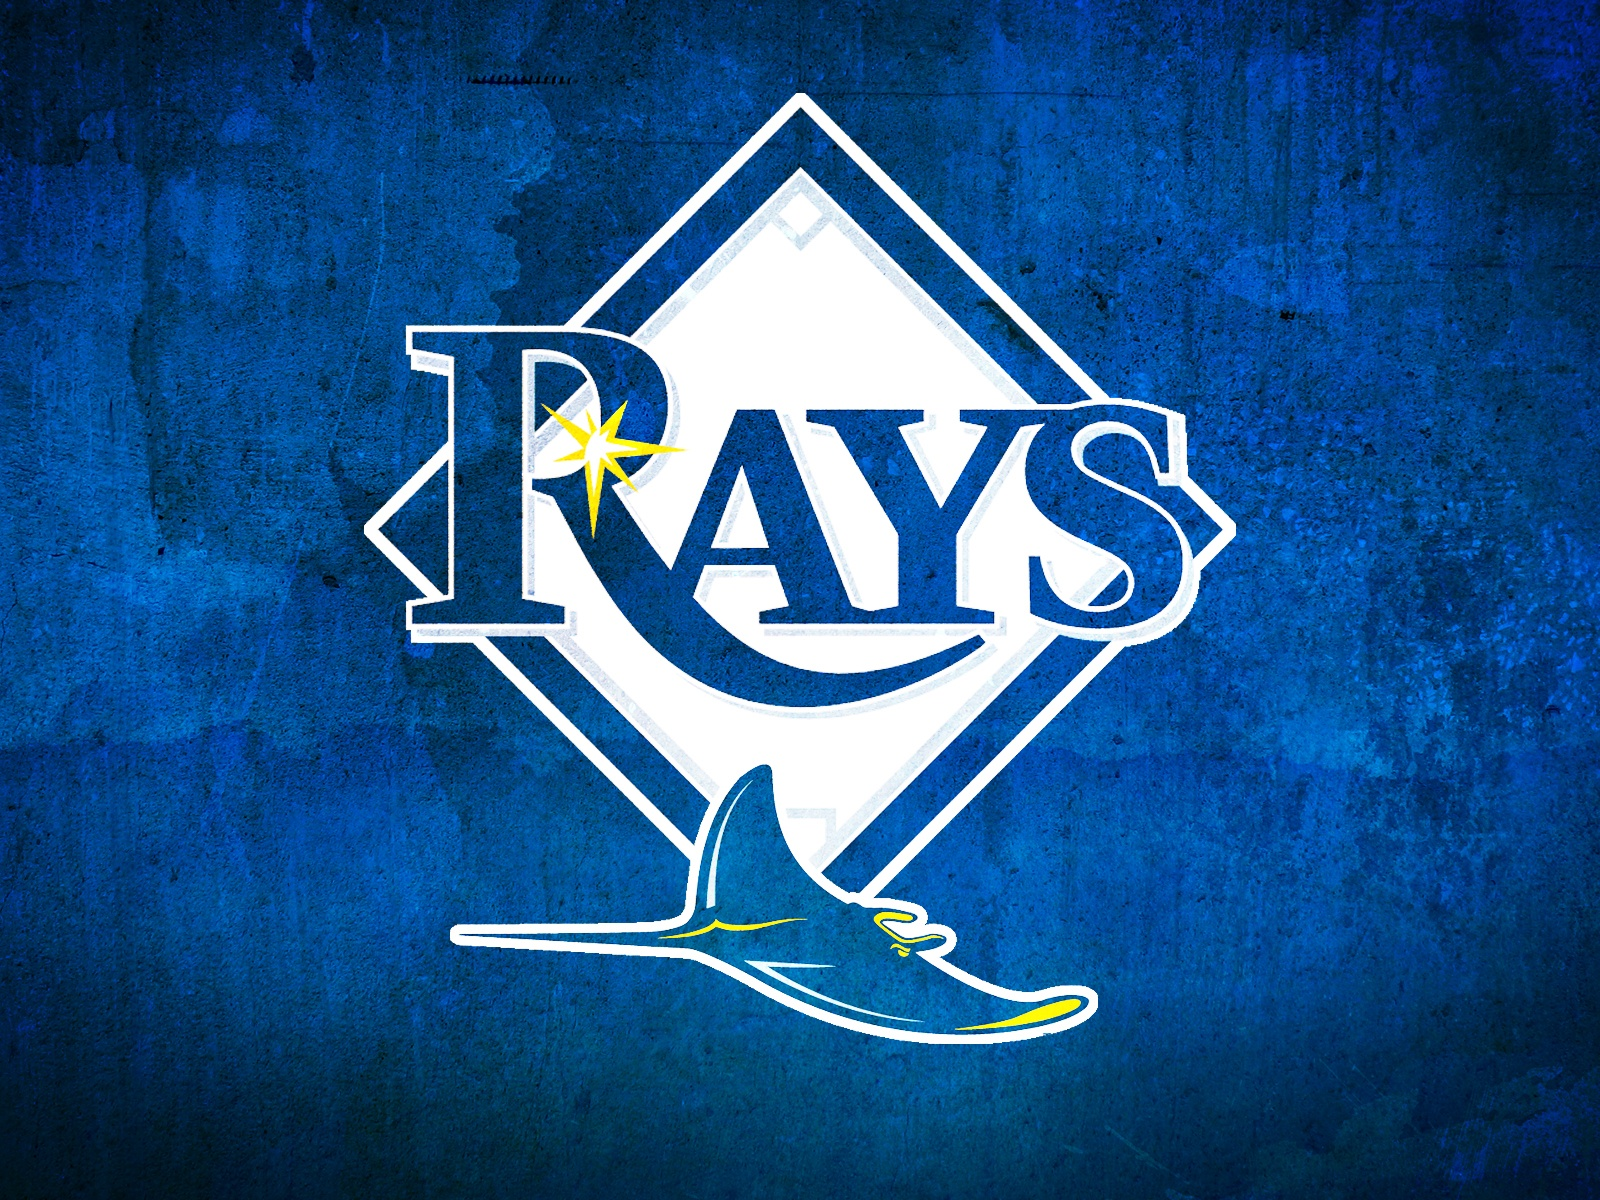 Tampa Bay Rays Res: 1600x1200 / Size:938kb. Views: 8683